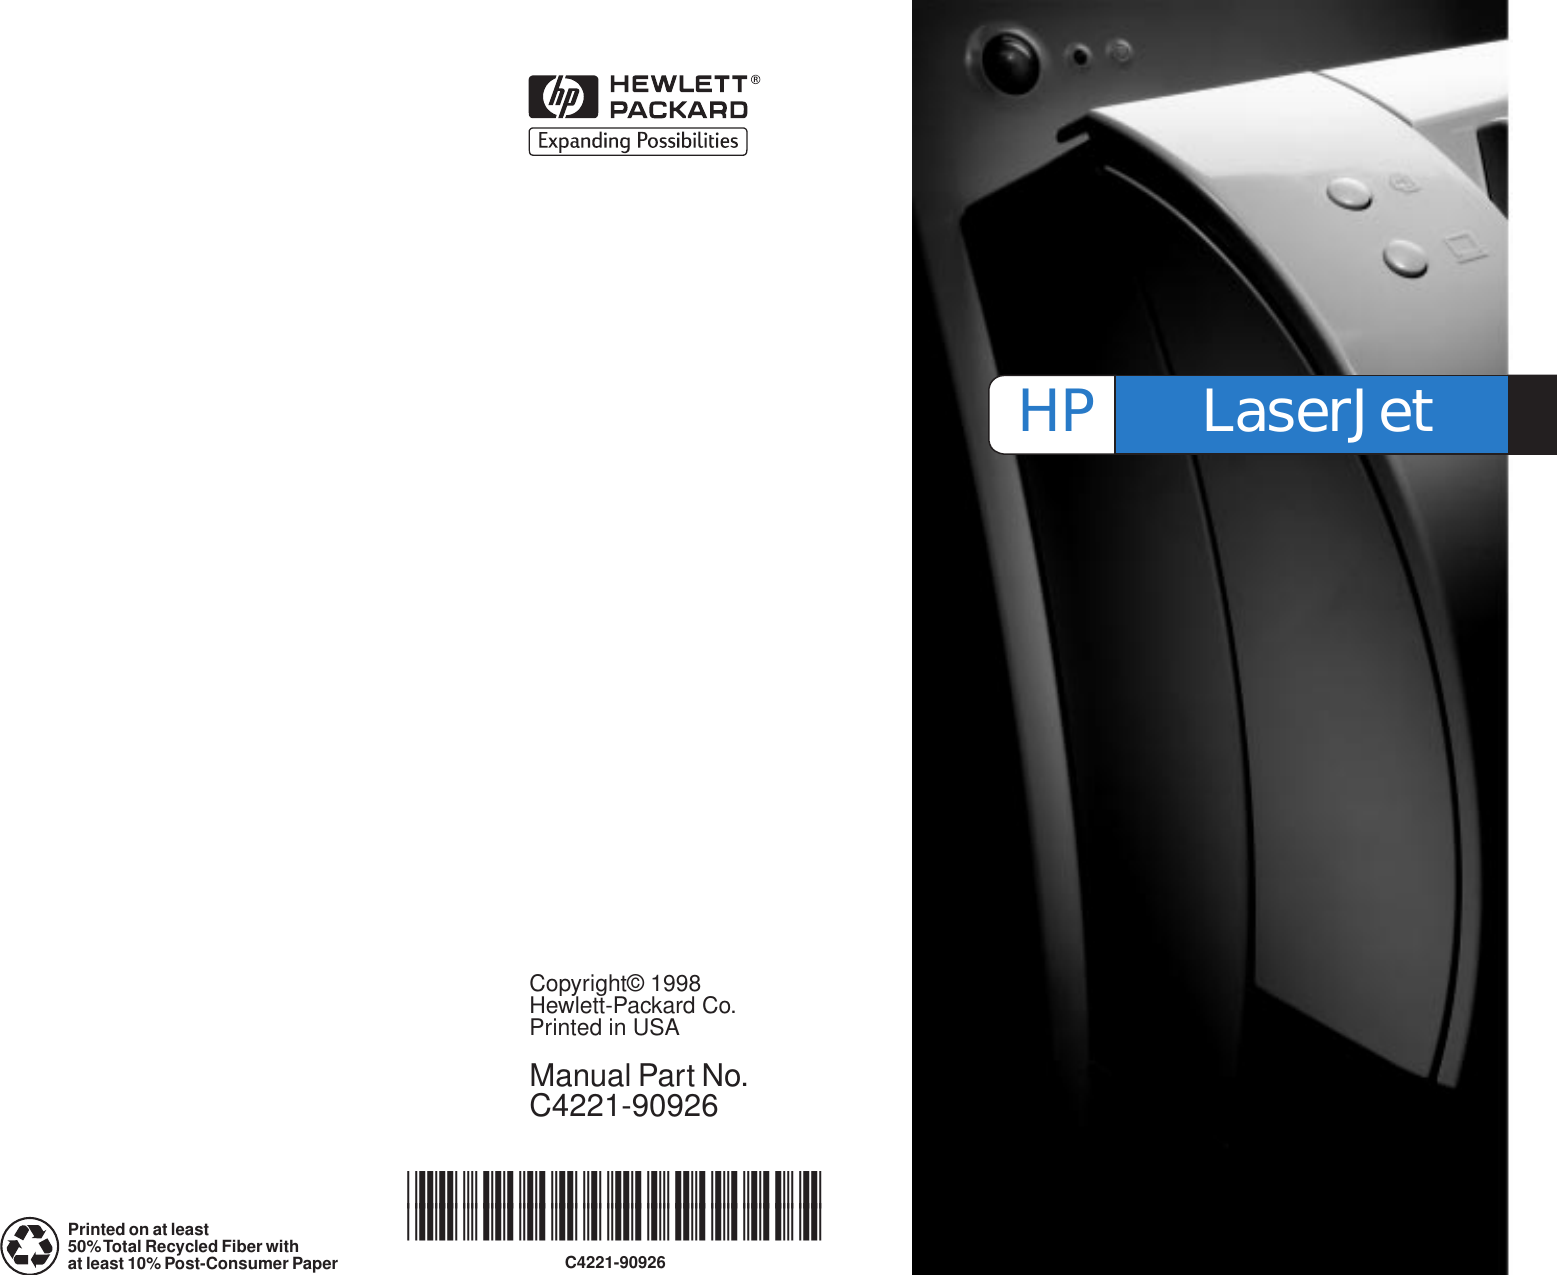 hp bpl06270 laser jet 1100 series scanner attachment quick reference rh usermanual wiki HP DL360 G7 HP 1100 Driver Windows 7